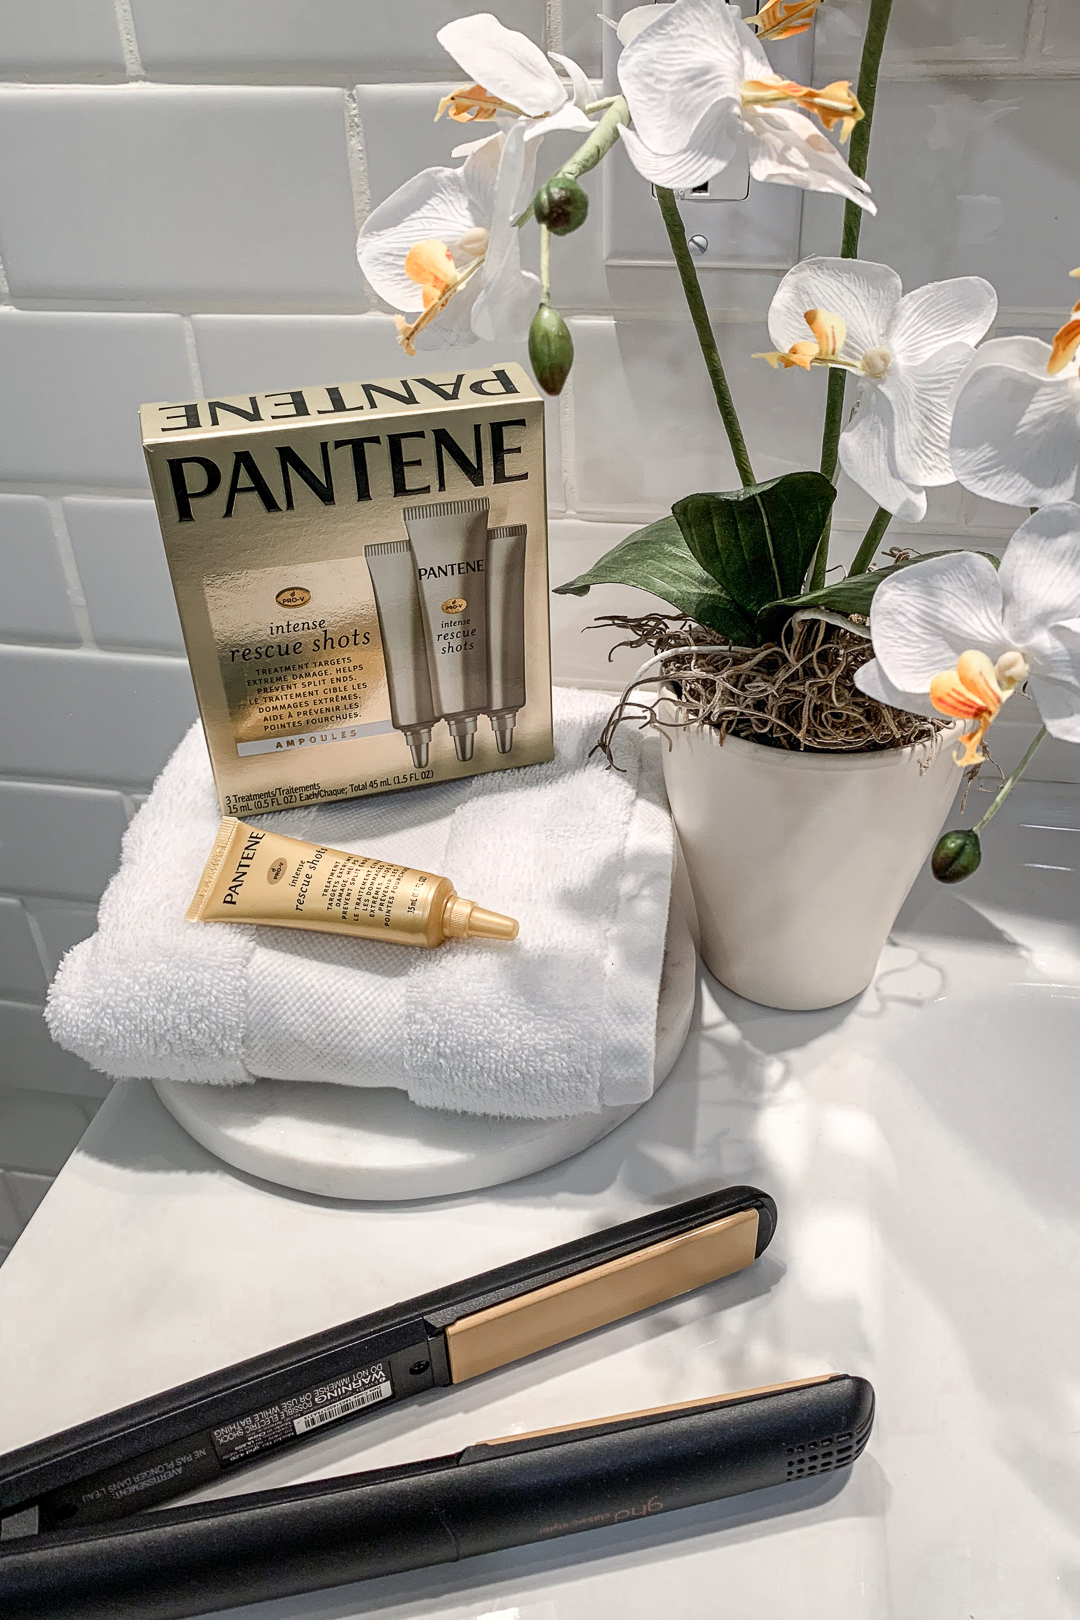 How I Keep My Hair Healthy From Styling Heat Damage using Pantene Rescue Shots Review - Nathalie Martin, woahstyle.com